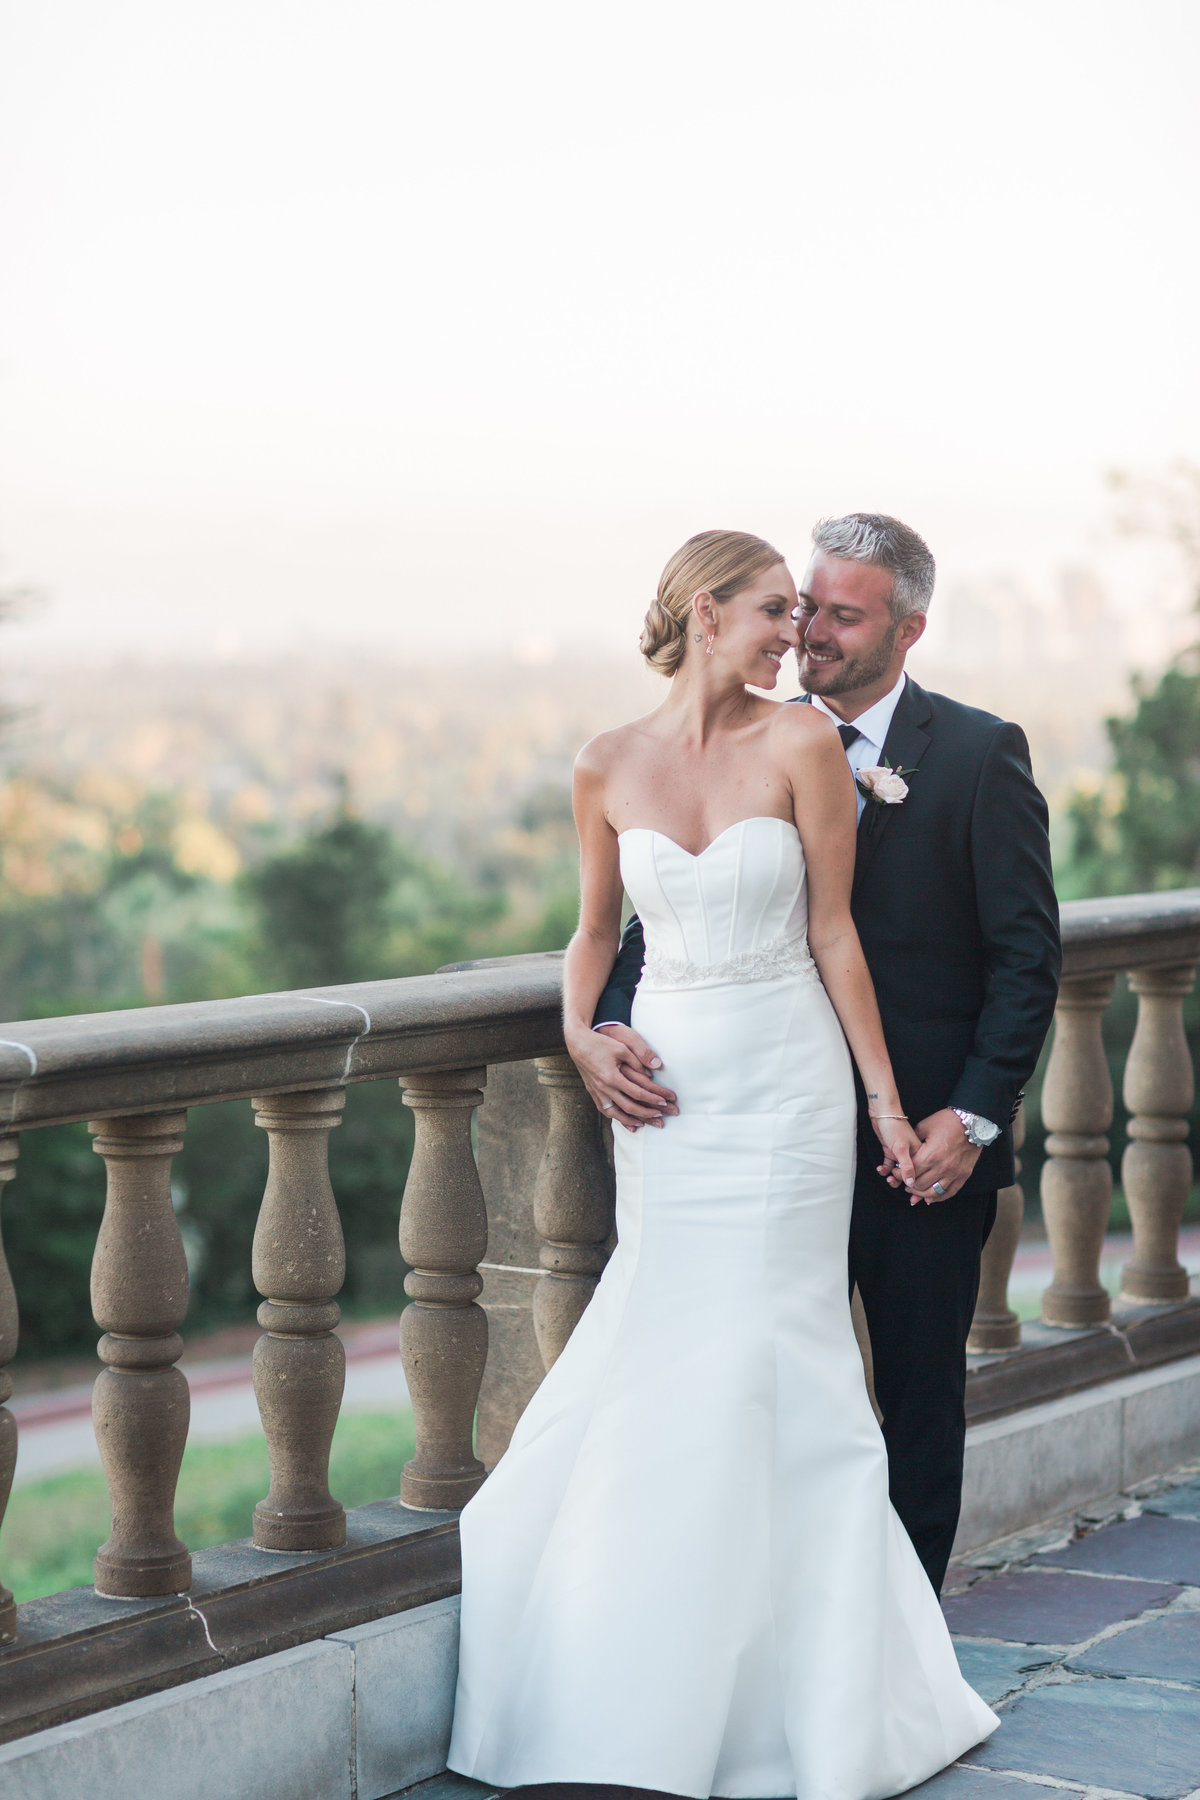 Greystone_Mansion_Intimate_Black_Tie_Wedding_Valorie_Darling_Photography - 178 of 206